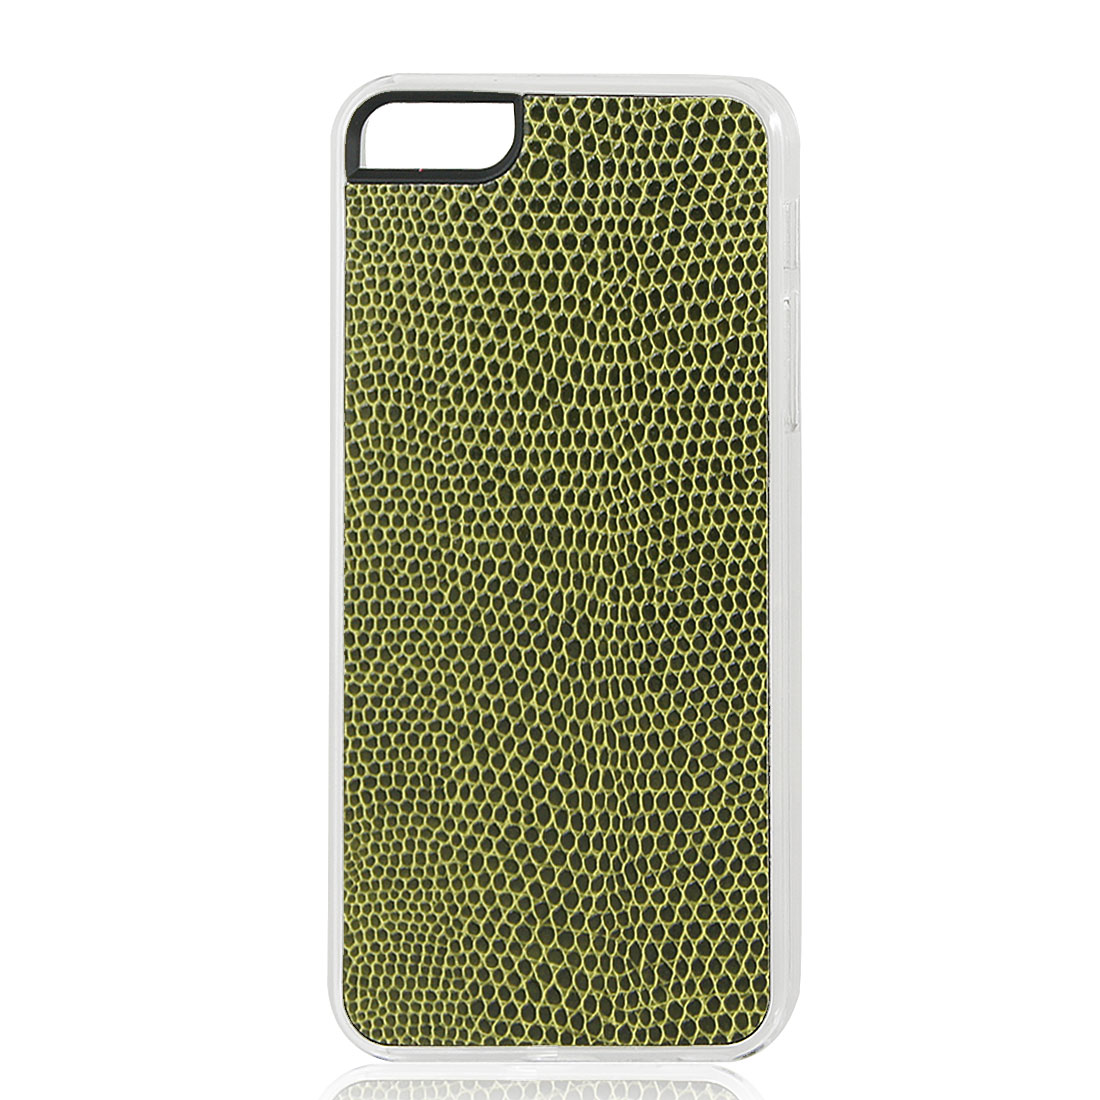 Army Green Snake Pattern Hard Back Case Cover Skin for iPhone 5 5G